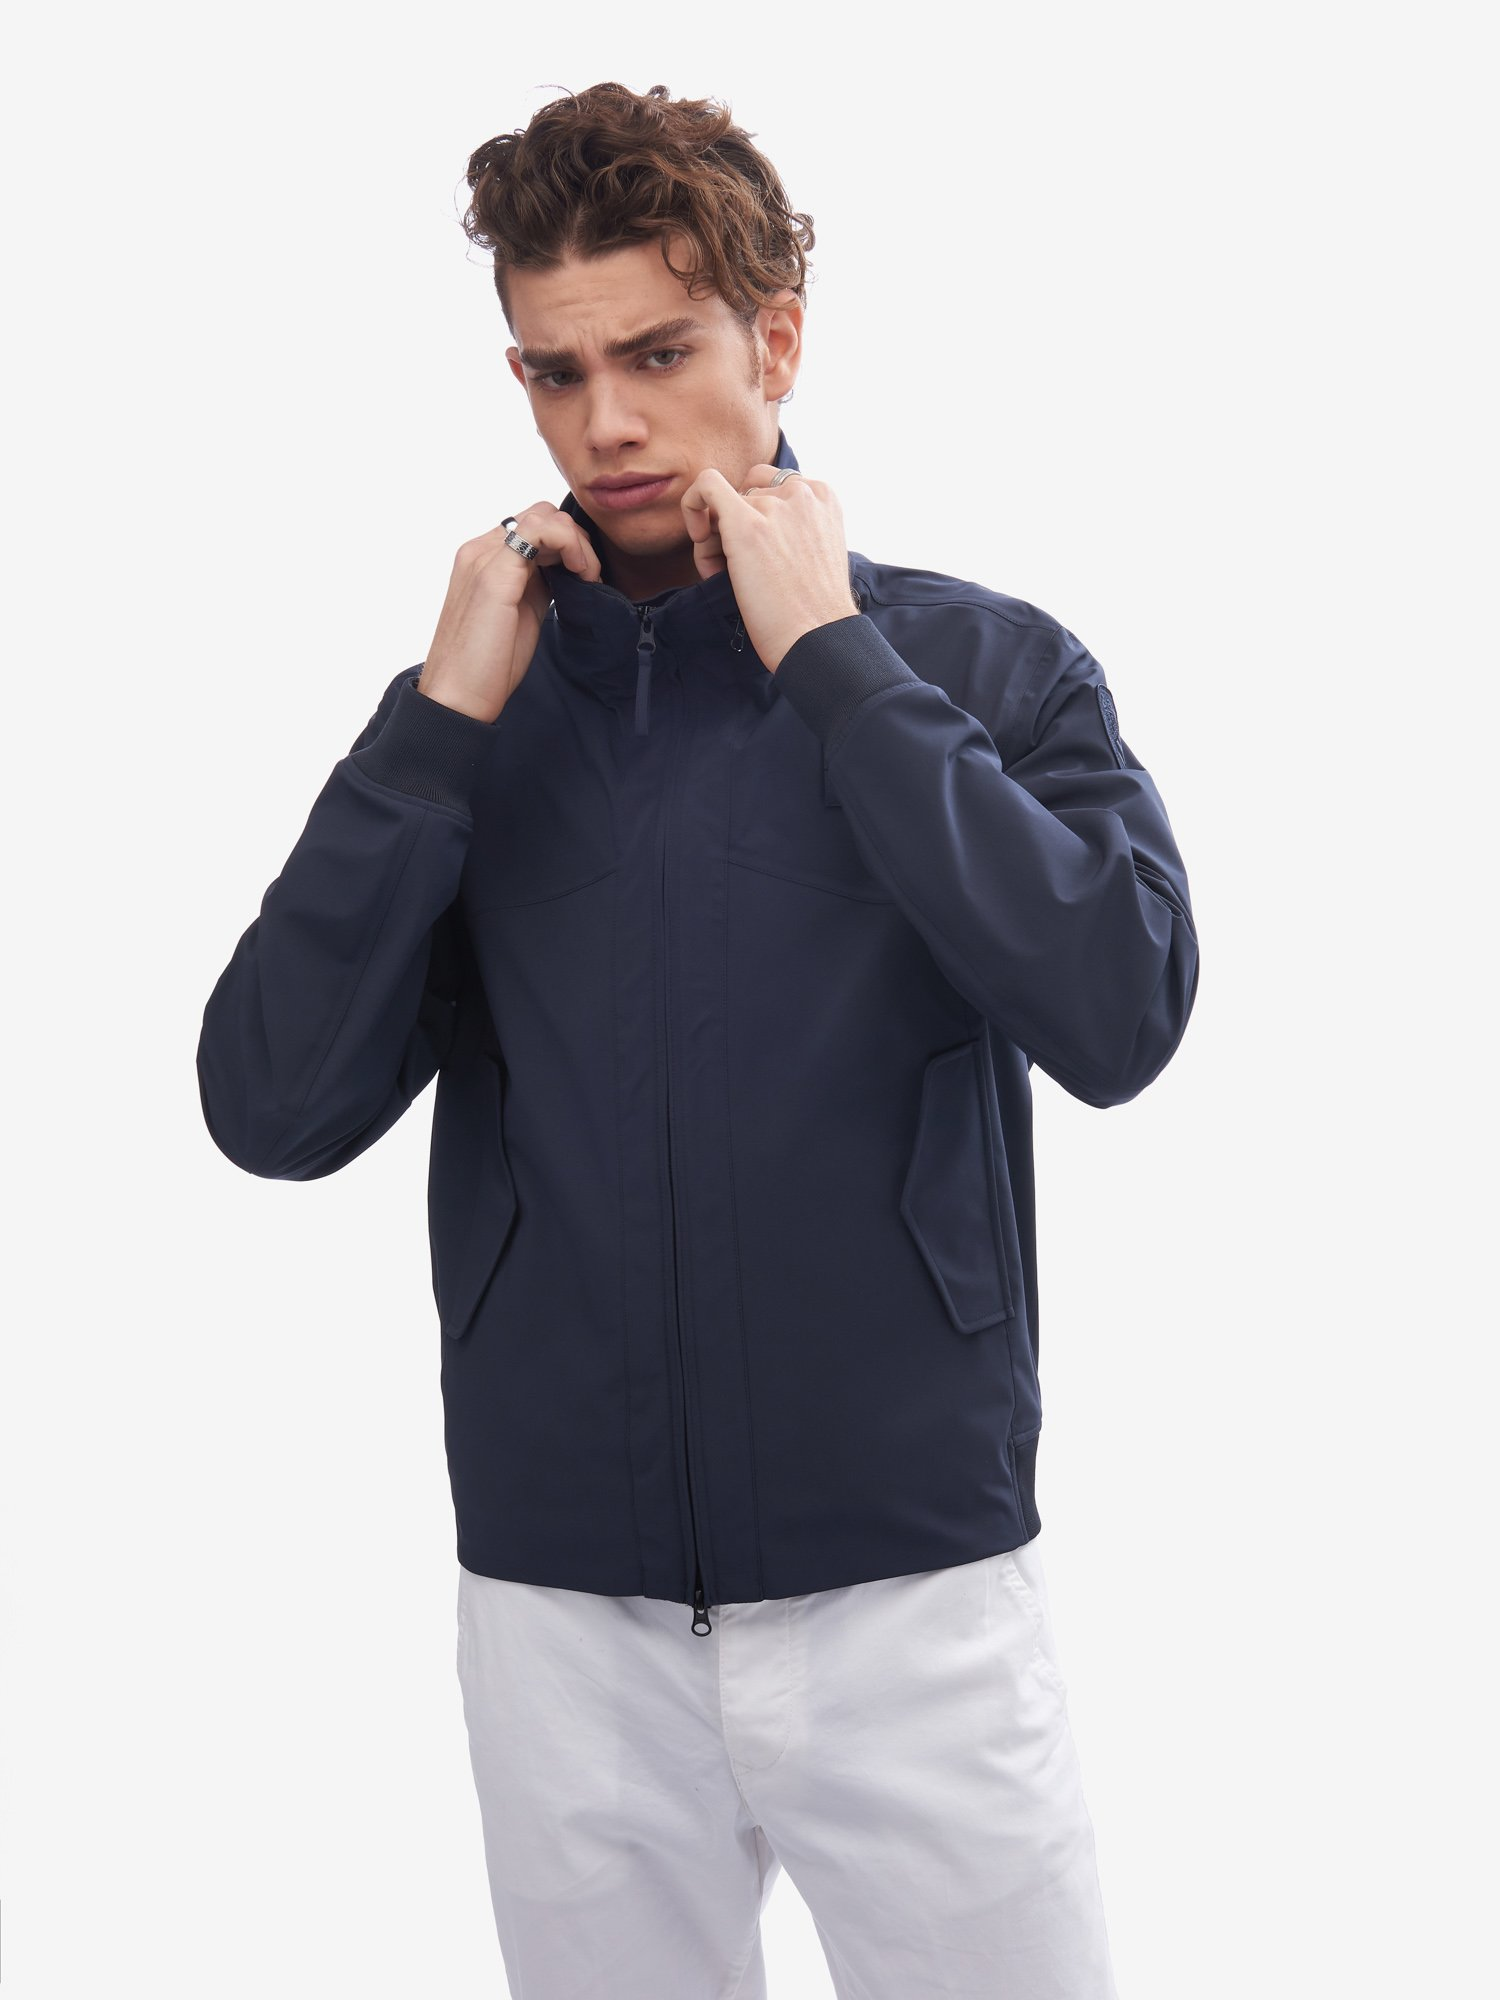 PAUL UNLINED TAPED NEOPRENE JACKET - Blauer